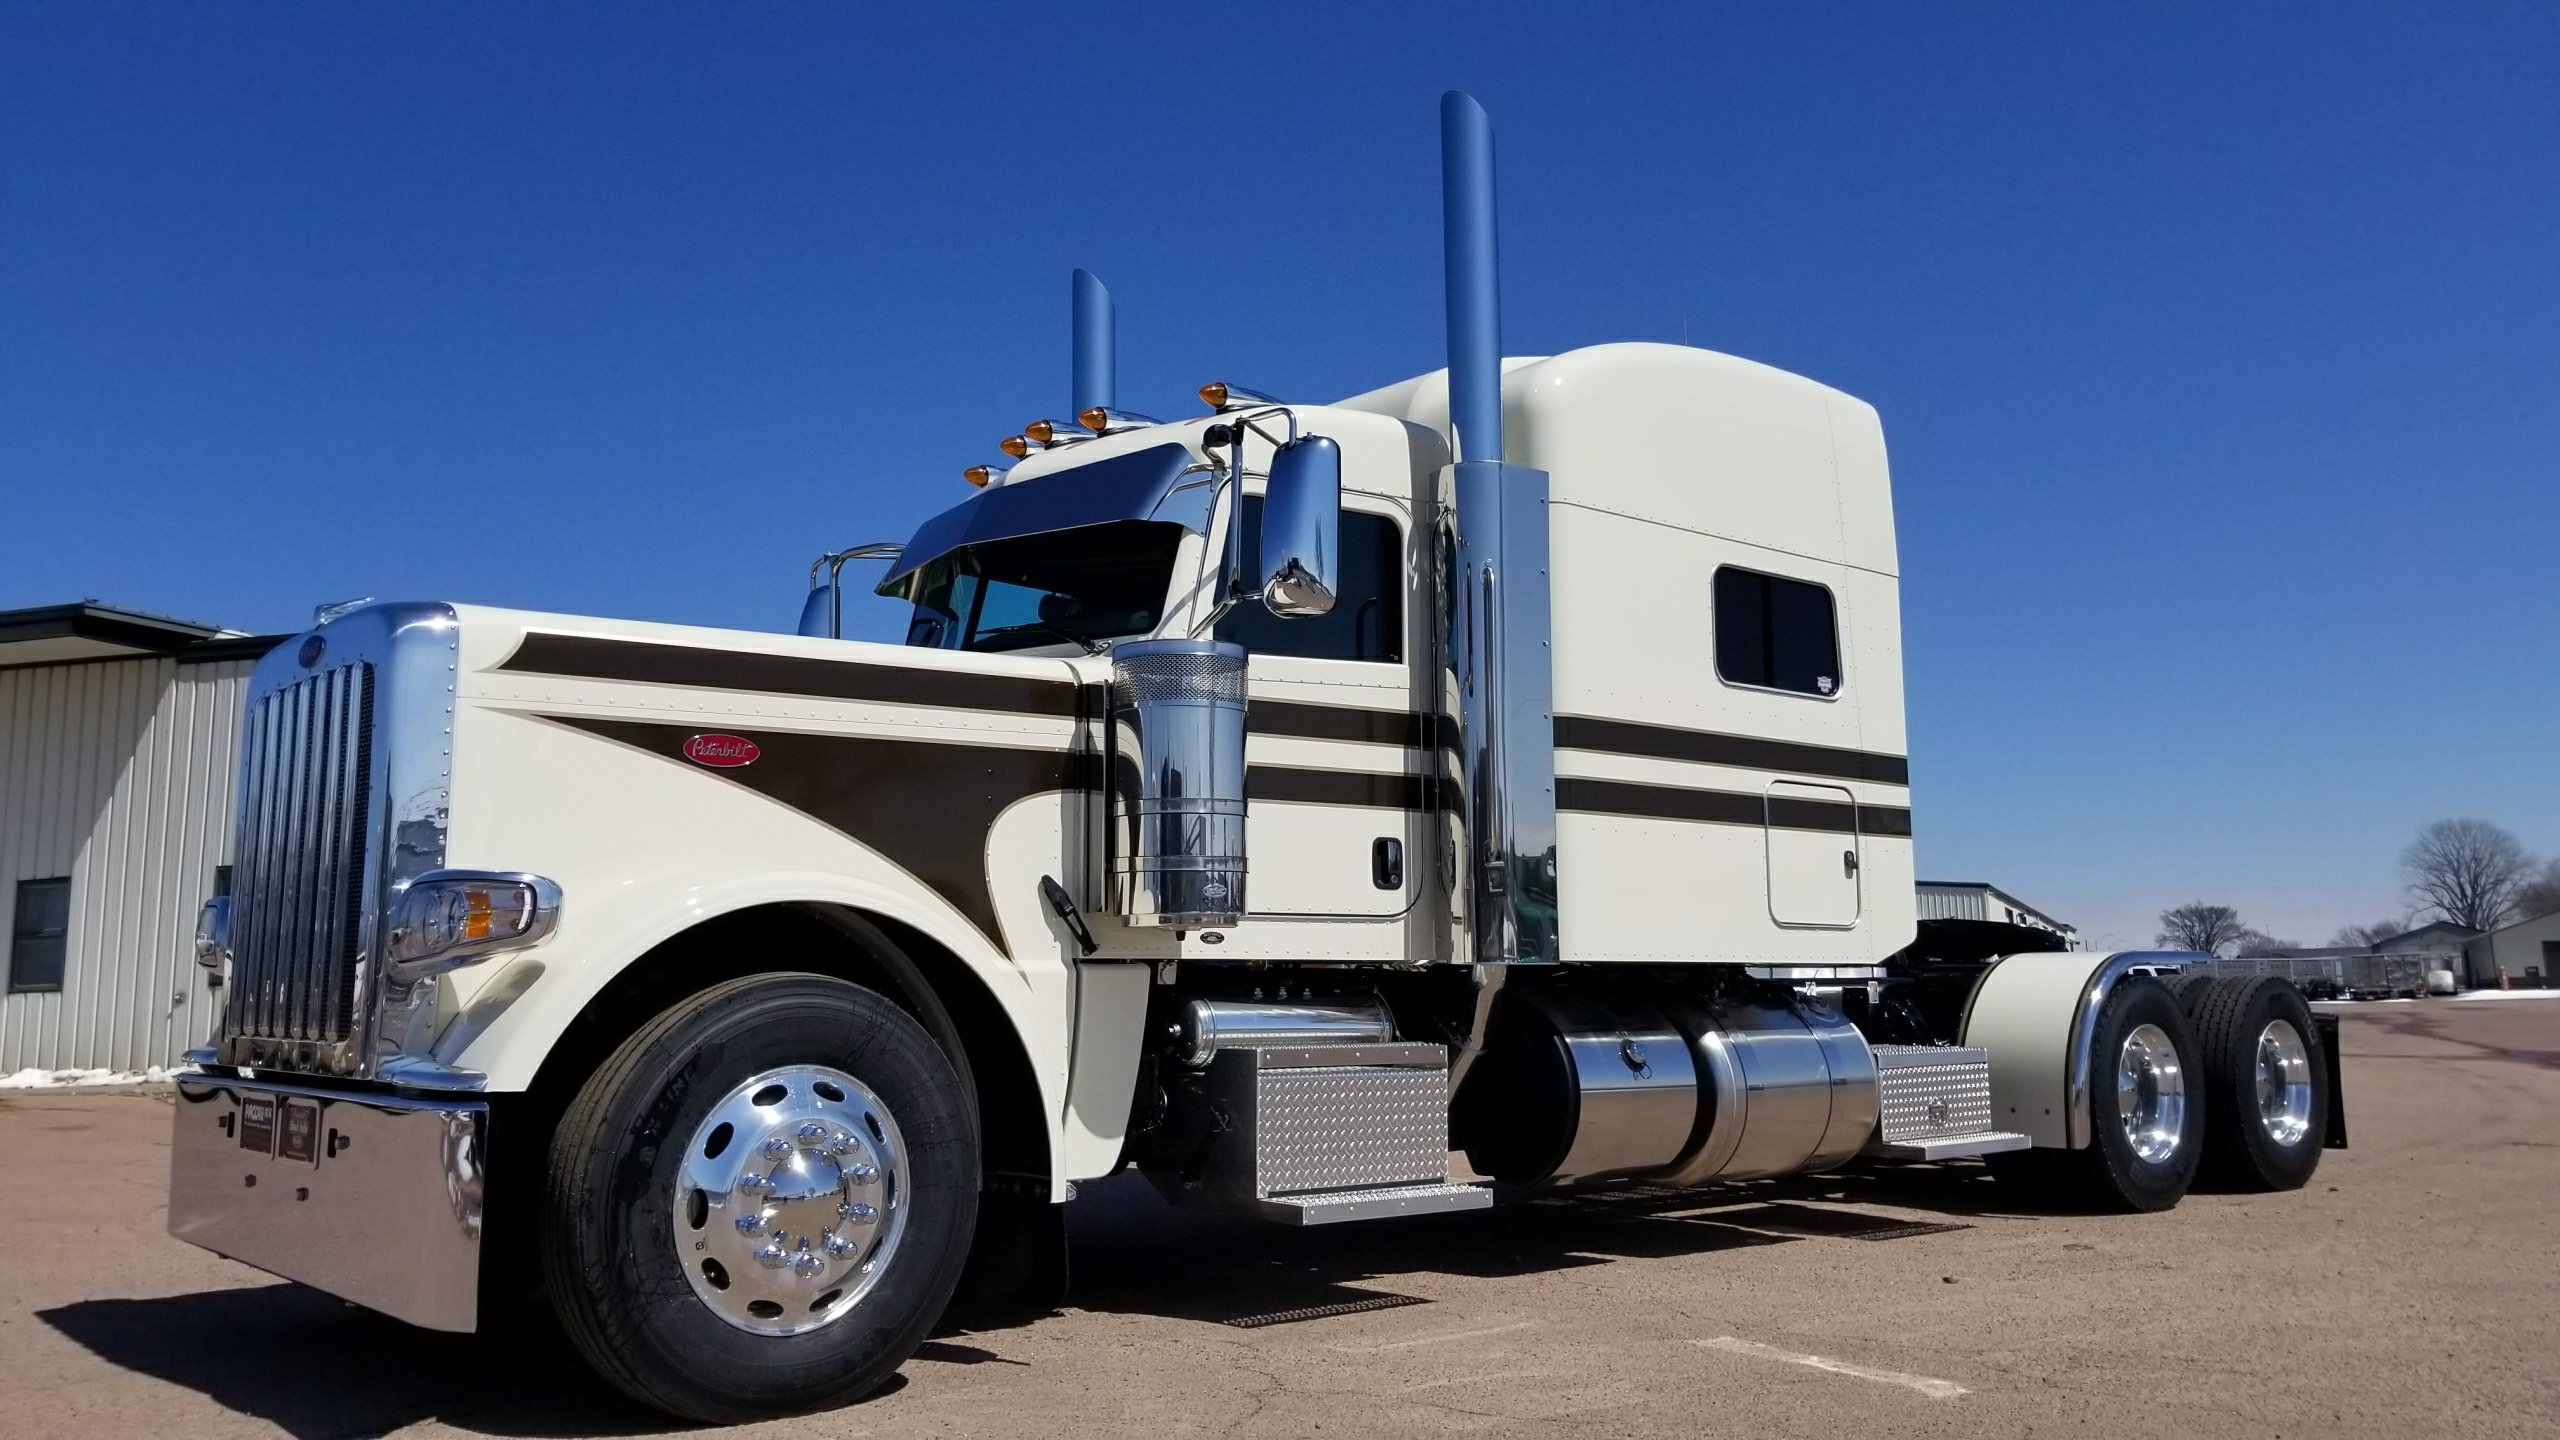 The Pete Store has one of the largest Peterbilt truck and parts inventories on the country, factory trained service technicians, custom body shop, truck leasing, rental.